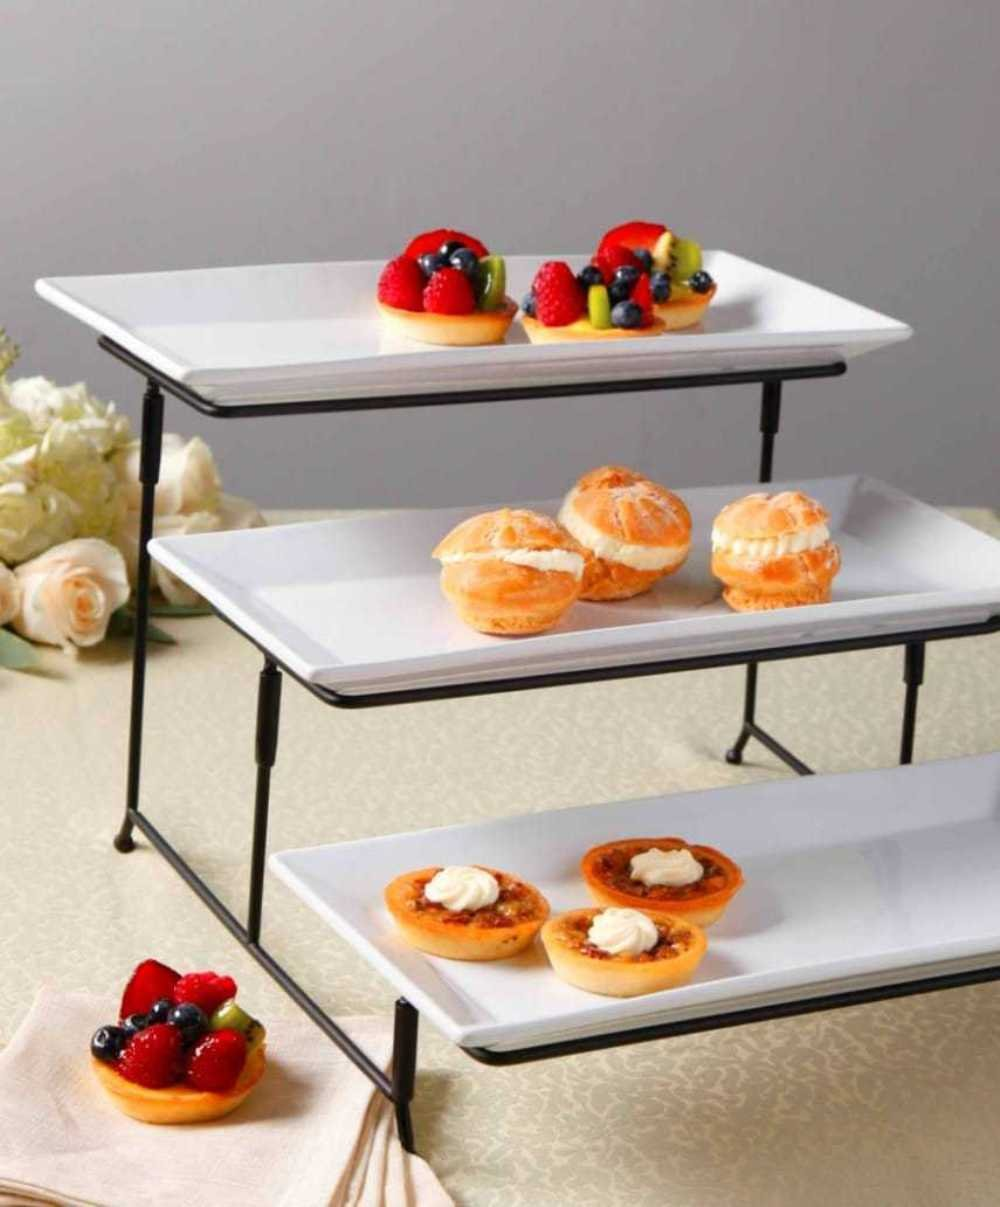 Amazoncom Porcelain 3 Tier Serving Tray Rectangular Serving